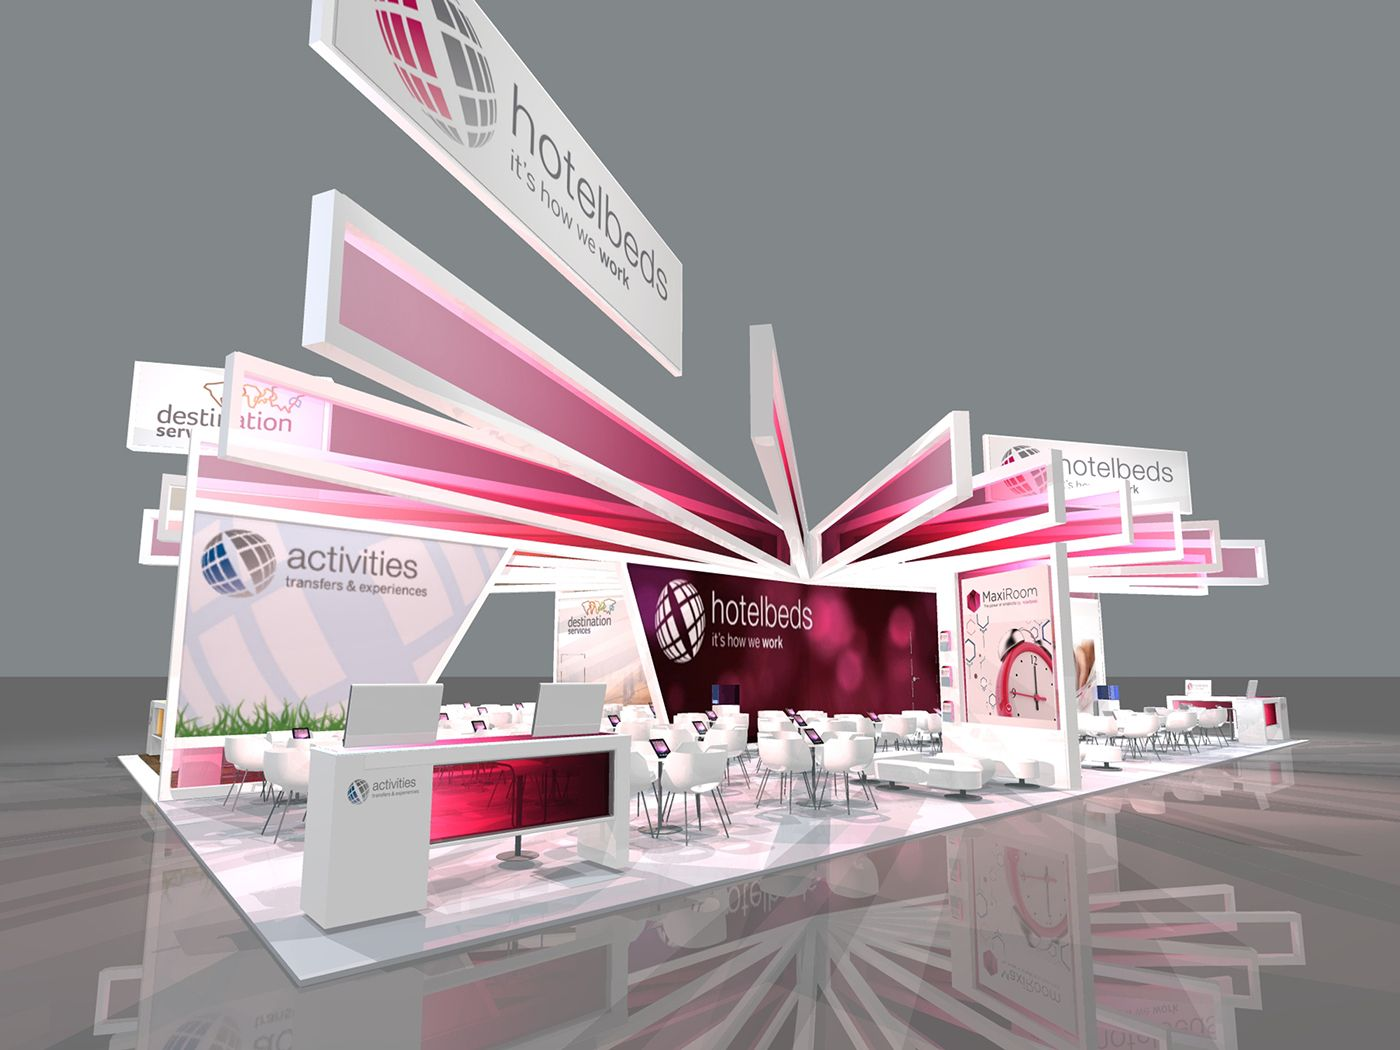 Exhibition Stall Sketch : Scamps and sketches on behance structure exhibition booth